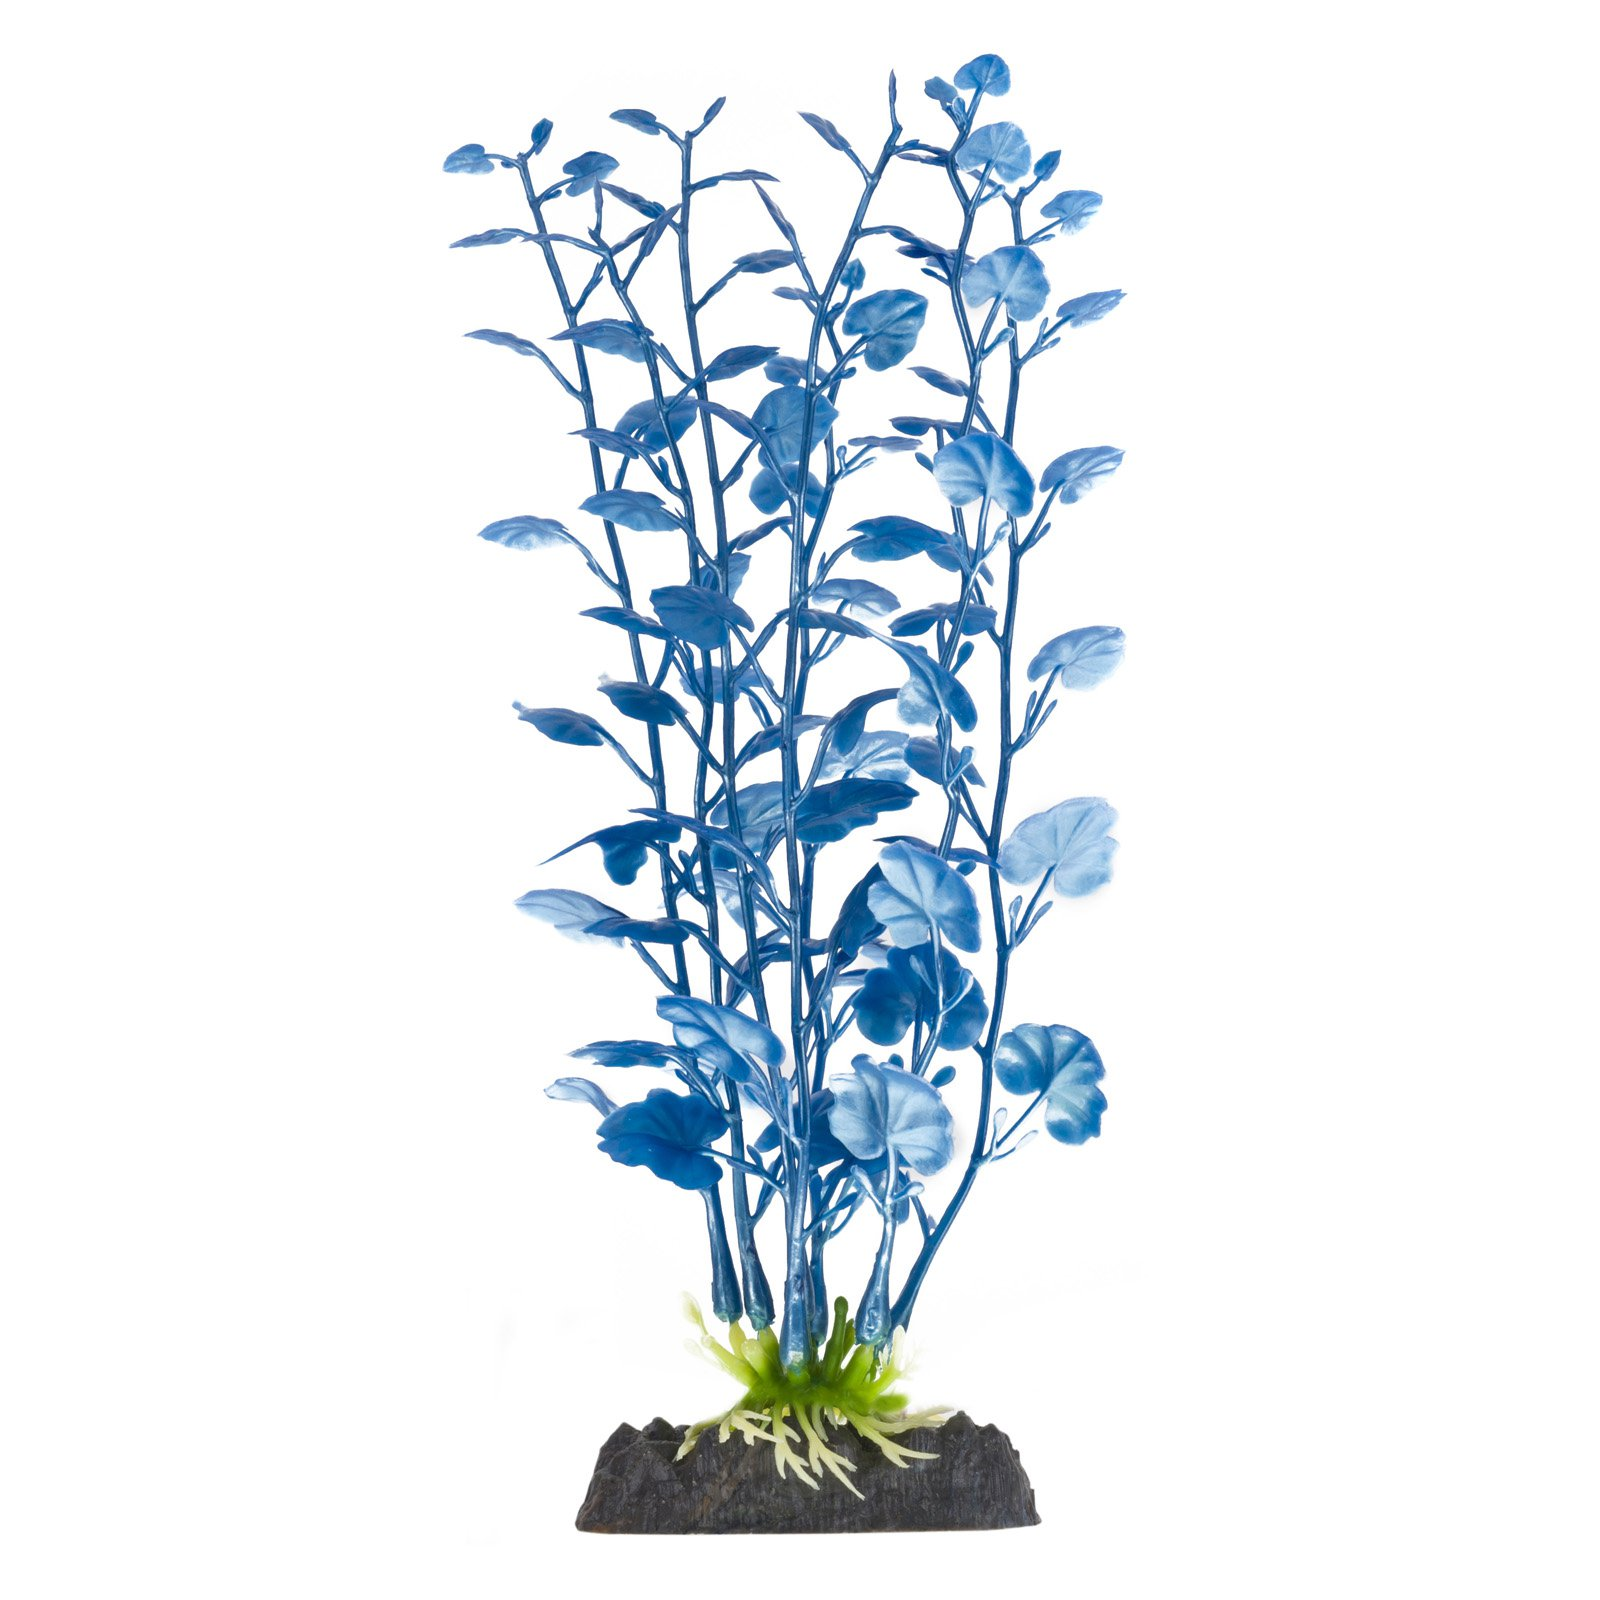 Penn Plax Finding Nemo Cardamine Aquarium Ornament - Large